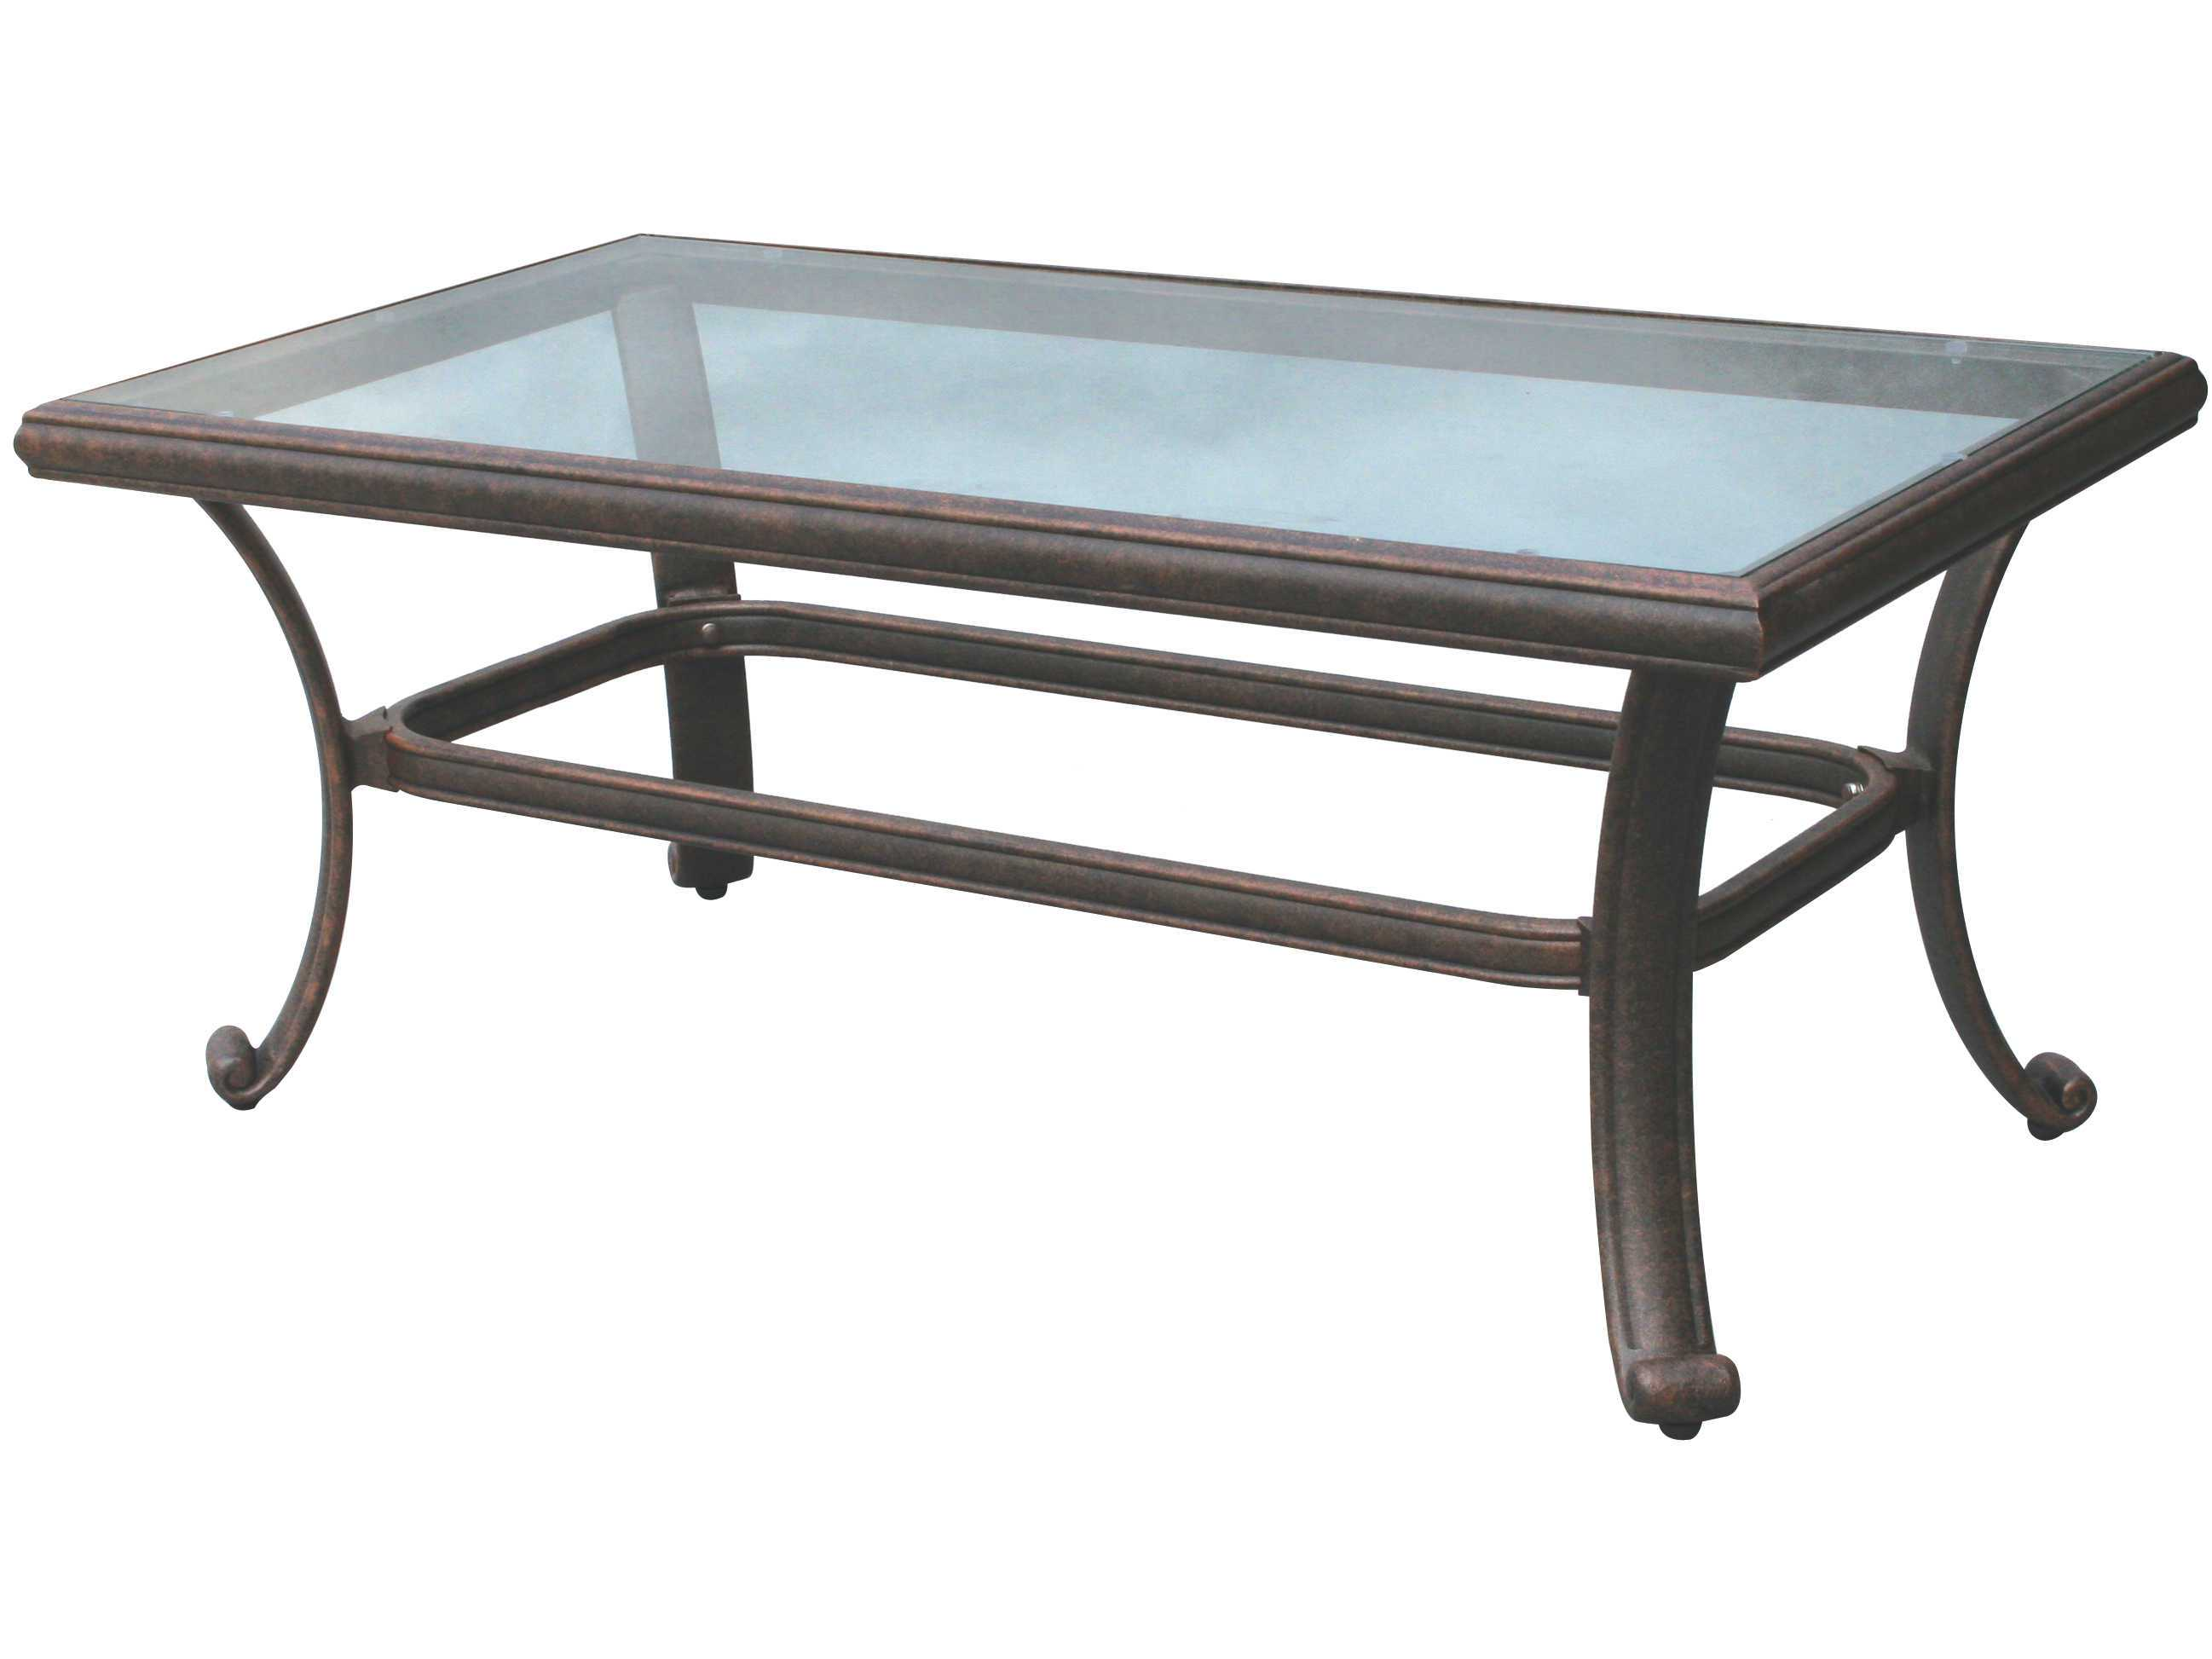 darlee outdoor living glass top cast aluminum antique bronze 42 x 24 rectangular coffee table. Black Bedroom Furniture Sets. Home Design Ideas